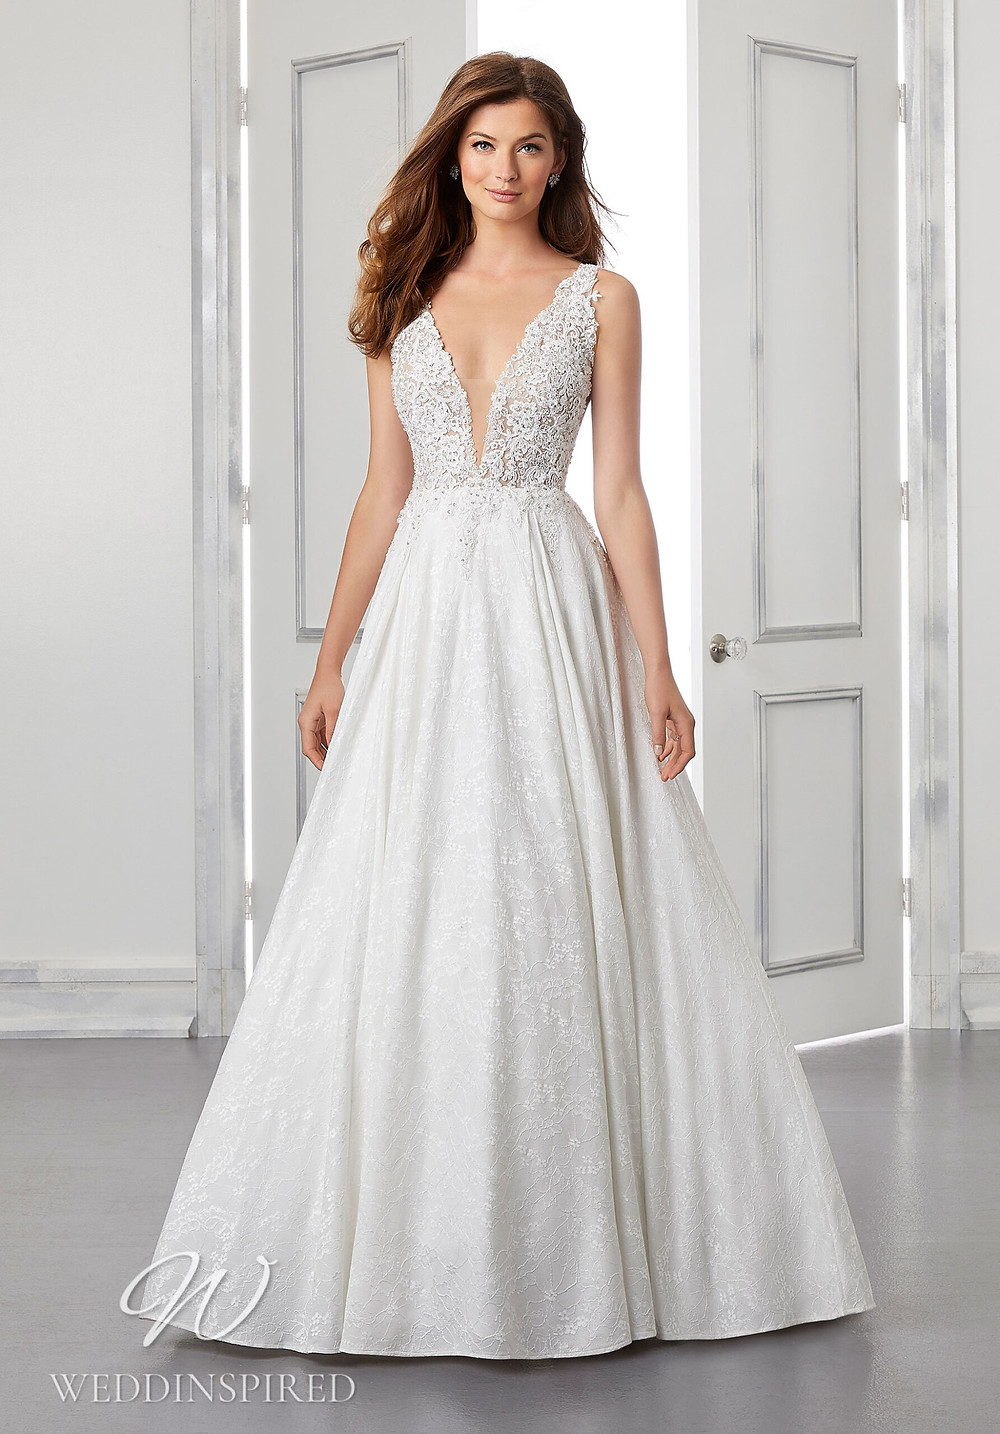 A Madeline Gardner lace A-line wedding dress with a v neck